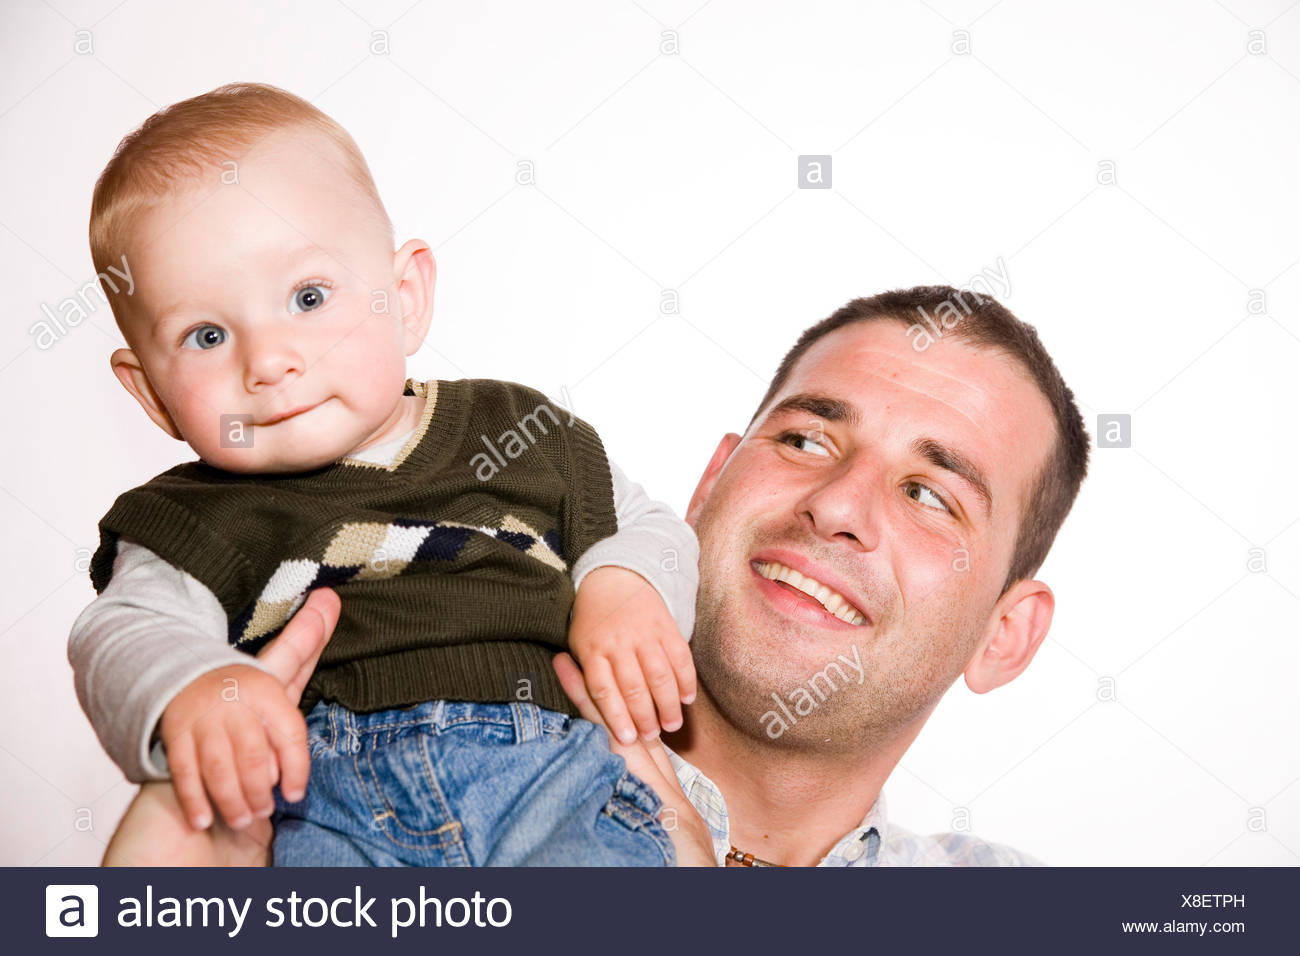 father and son - Stock Image